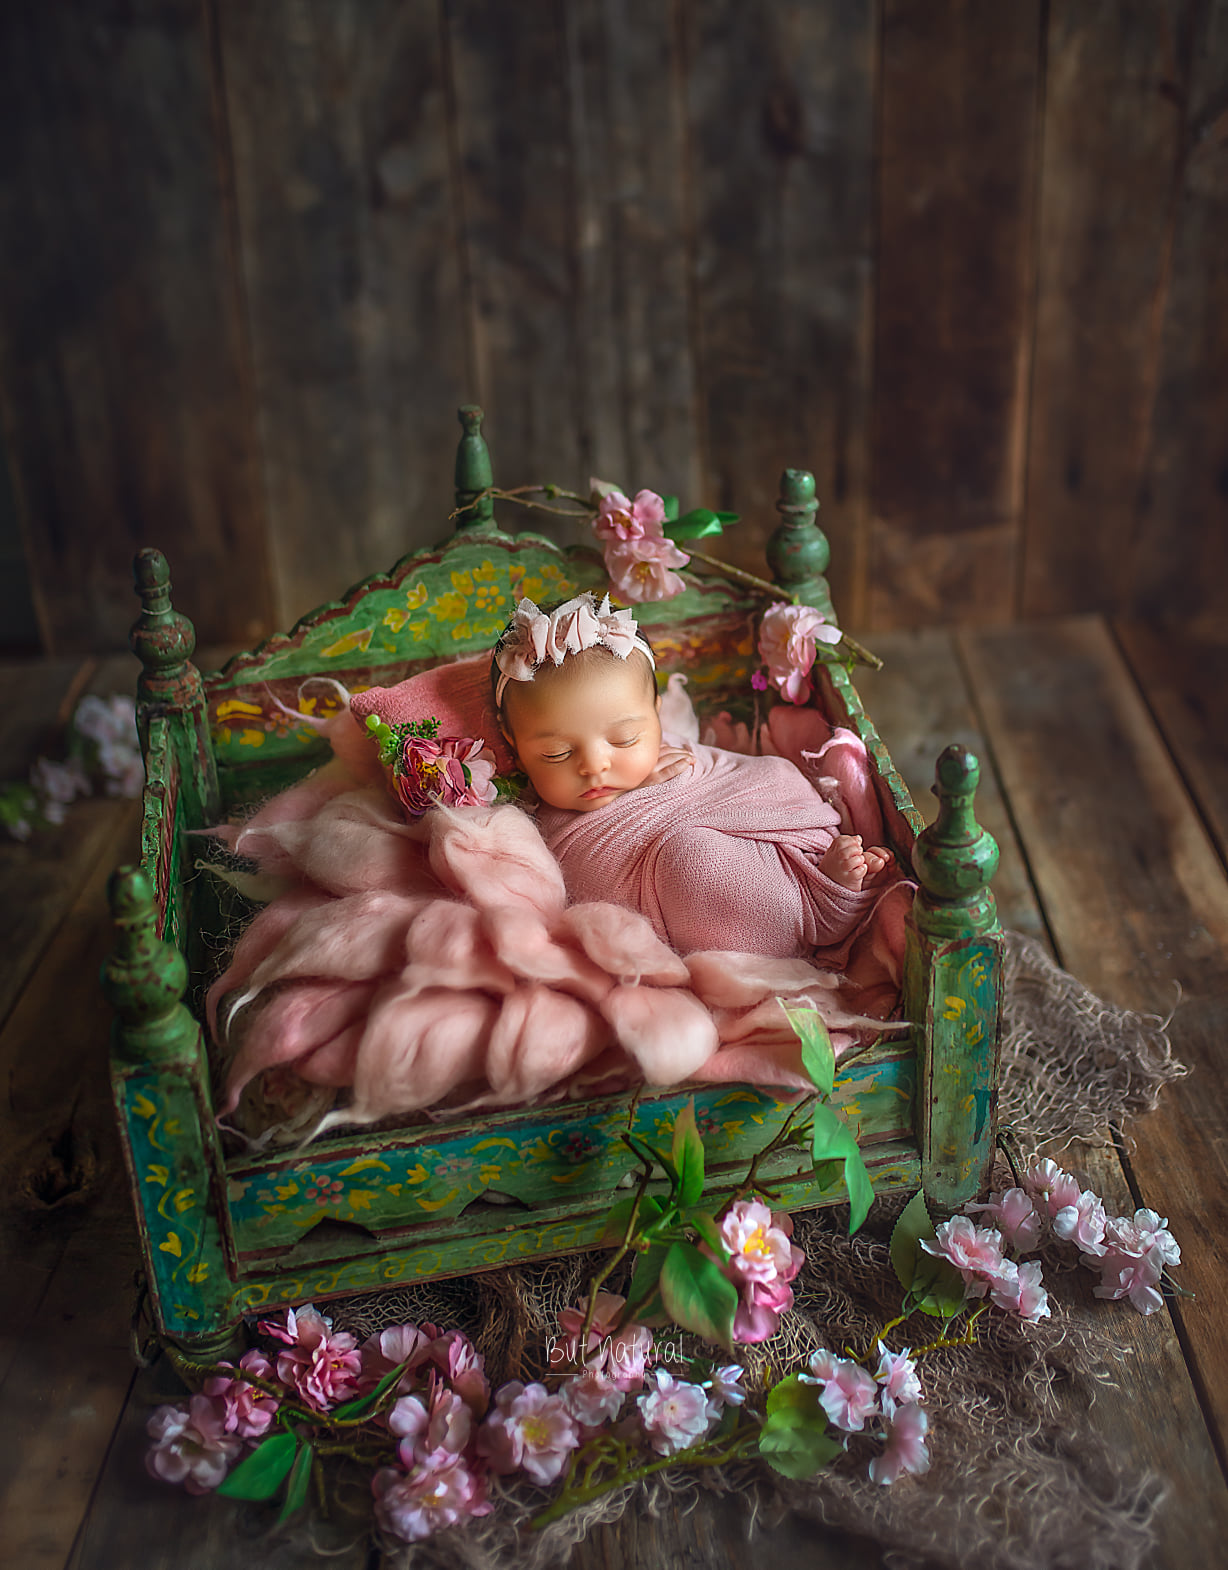 Cute little newborn sleeping on a prop for a newborn photoshoot by Sujata Setia   But Natural Photography